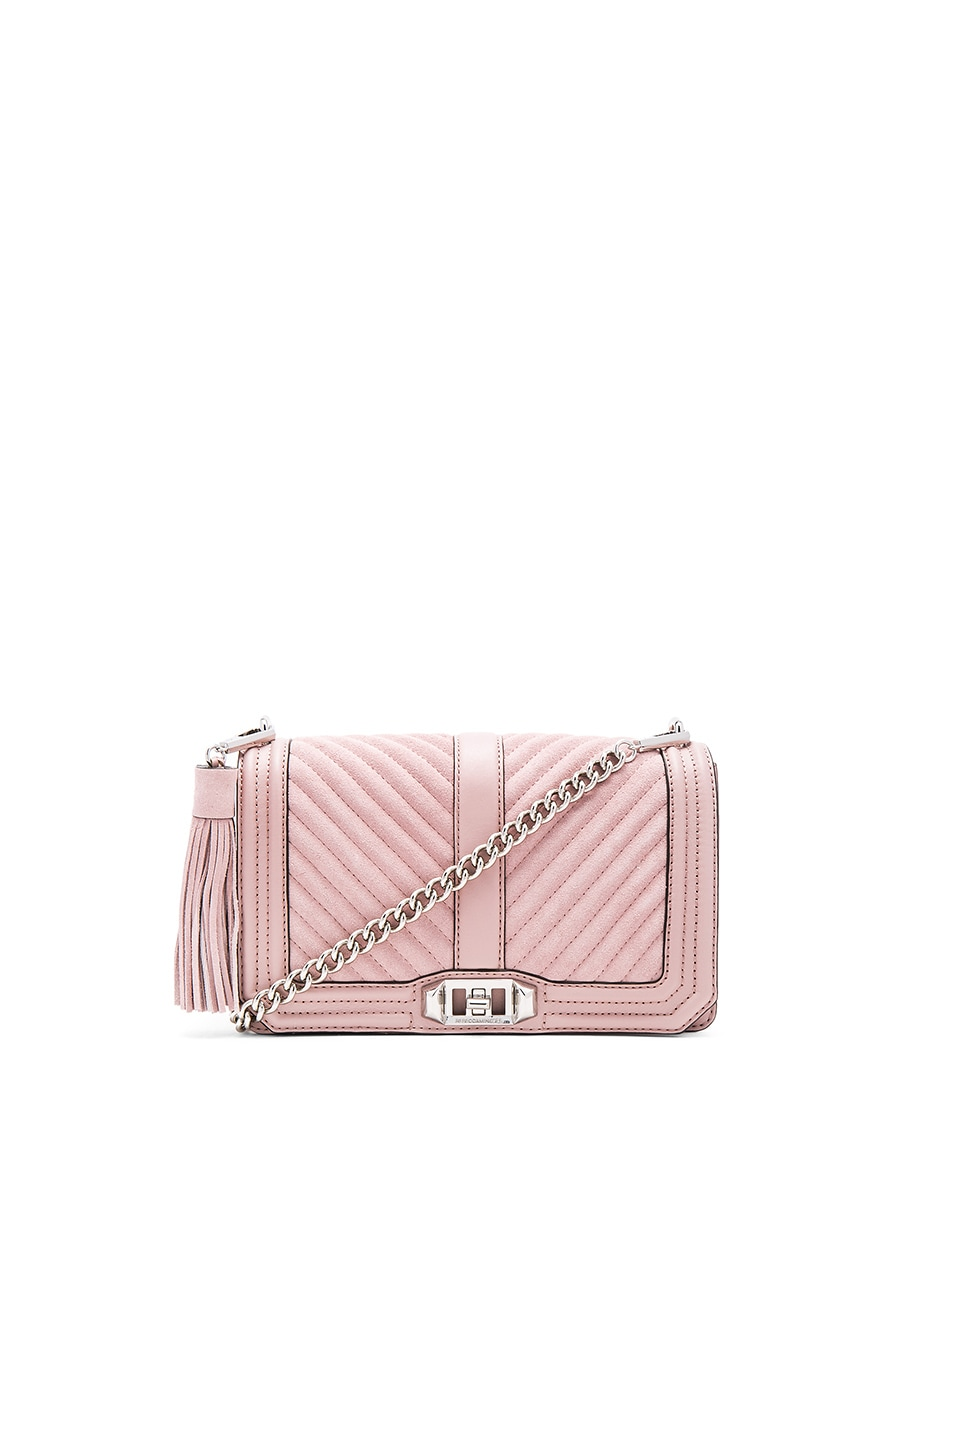 Rebecca Minkoff Chevron Quilted Love Crossbody Bag in Vintage Pink